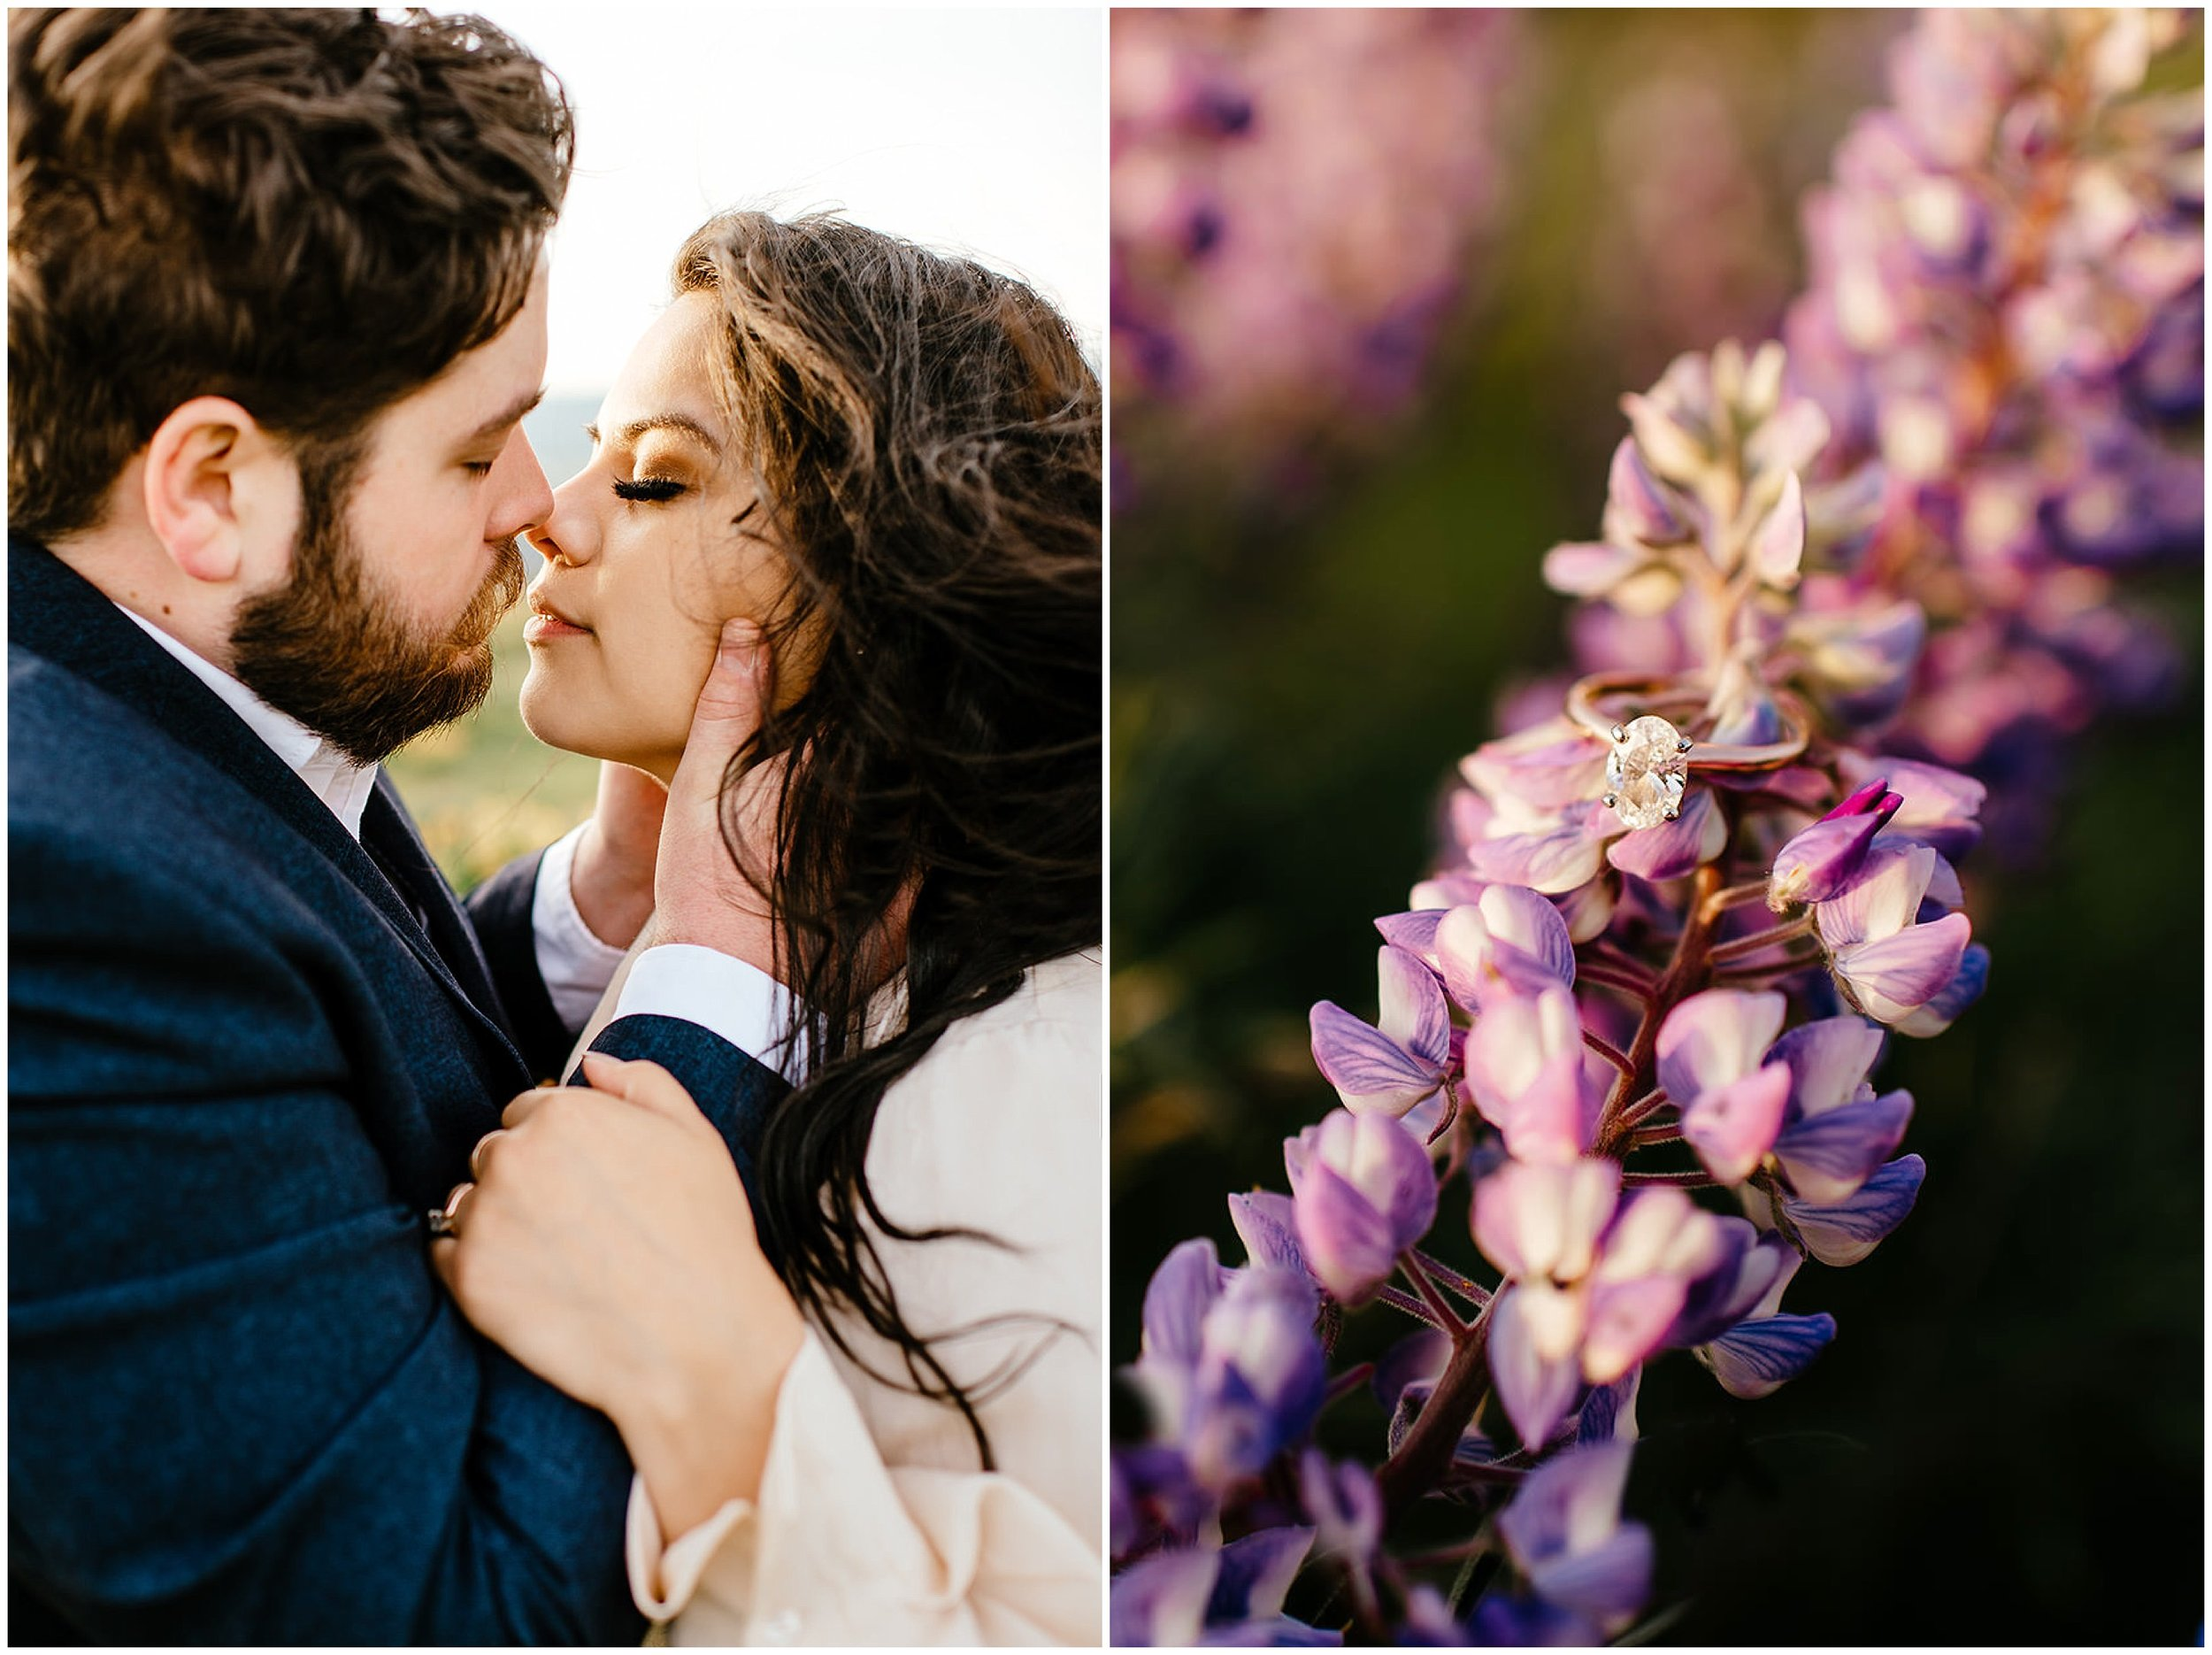 Wild-flower-engagement-session-at-rowena-crest-46.jpg